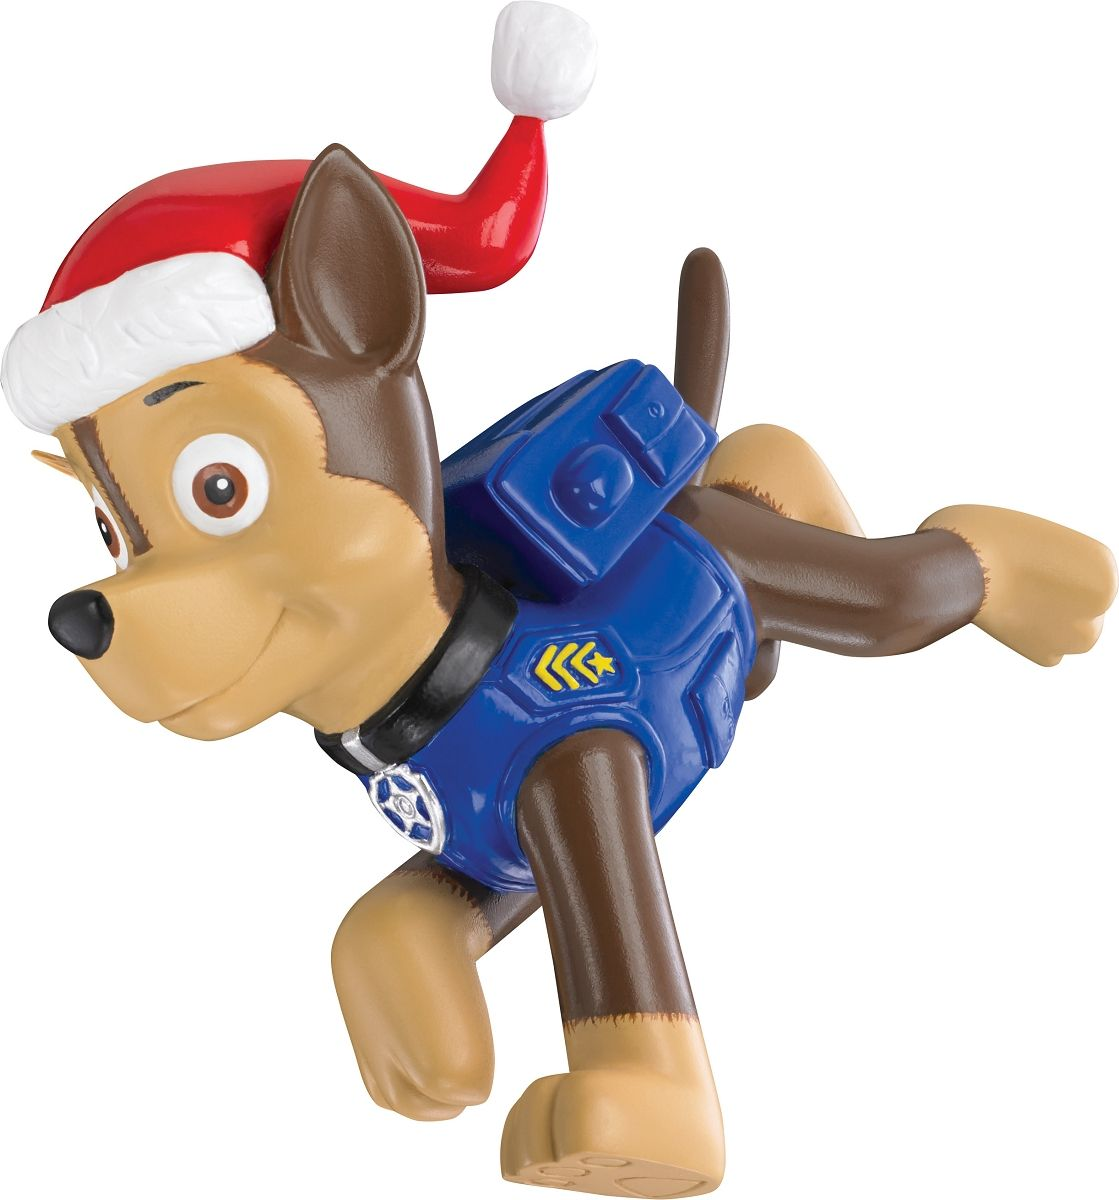 2016 paw patrol chase carlton ornament from american greetings at 2016 paw patrol chase carlton ornament from american greetings at hooked on ornaments kristyandbryce Choice Image